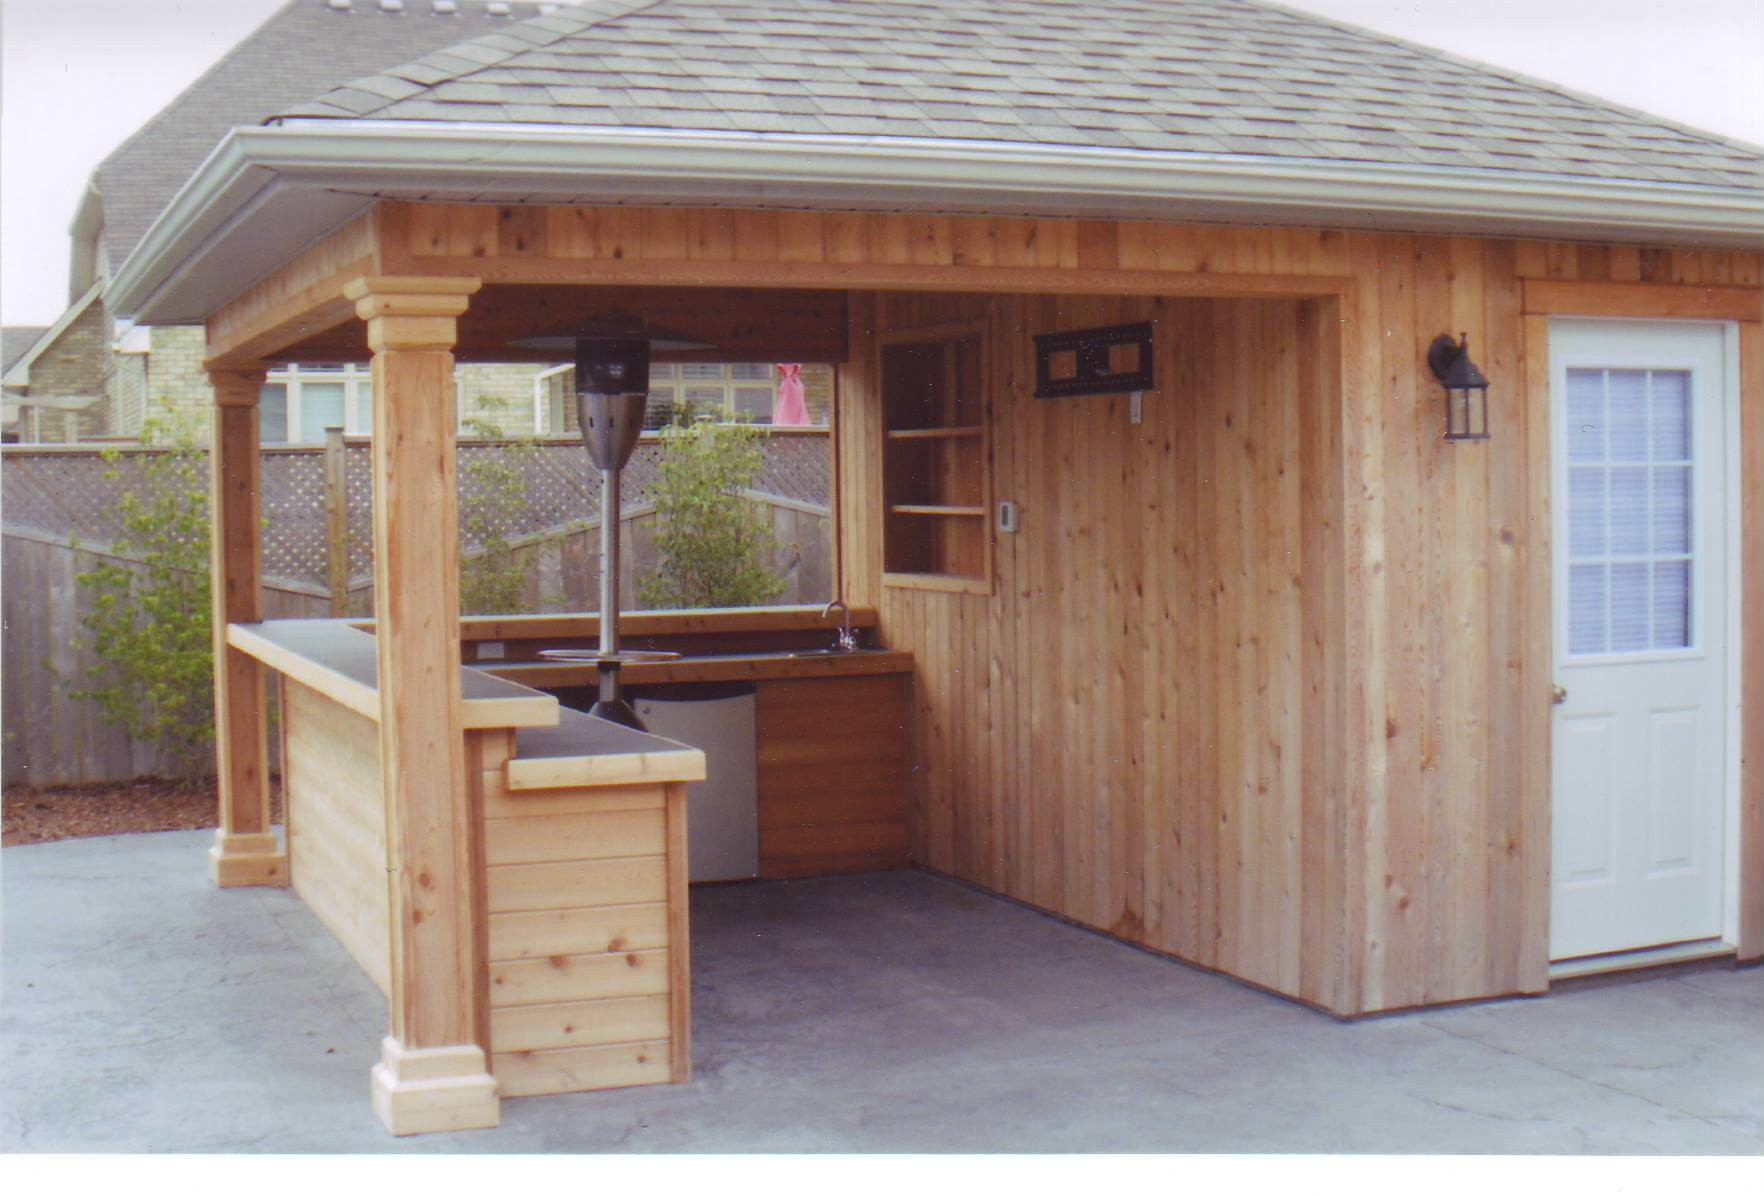 Best ideas about Backyard Shed Ideas . Save or Pin Backyard Bar Shed Ideas Build a Pub Shed Now.